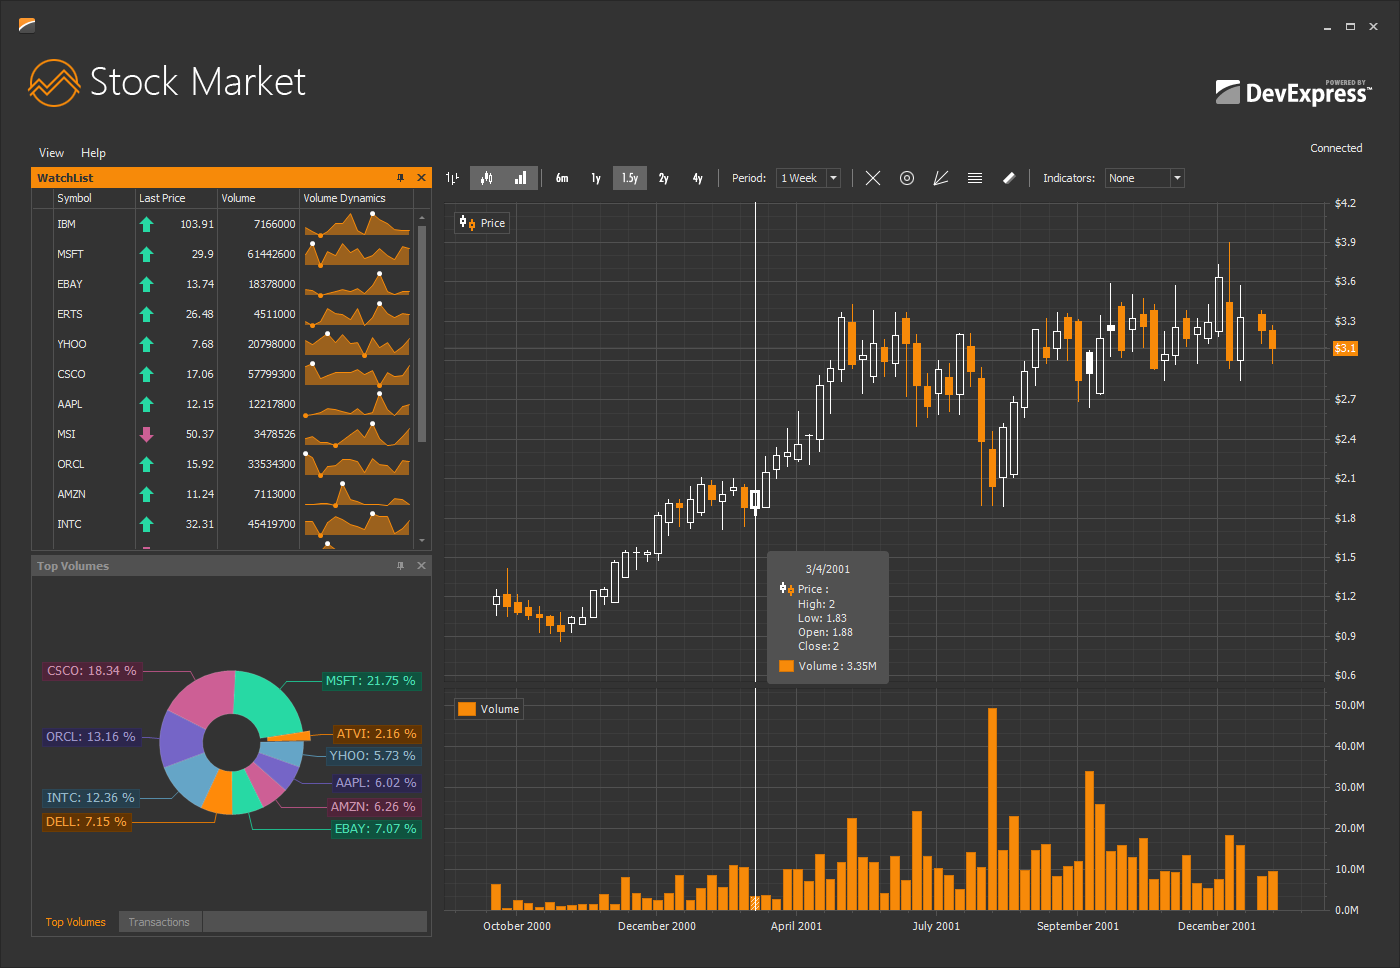 DevExpress WinForms Charts in Stock Market Application